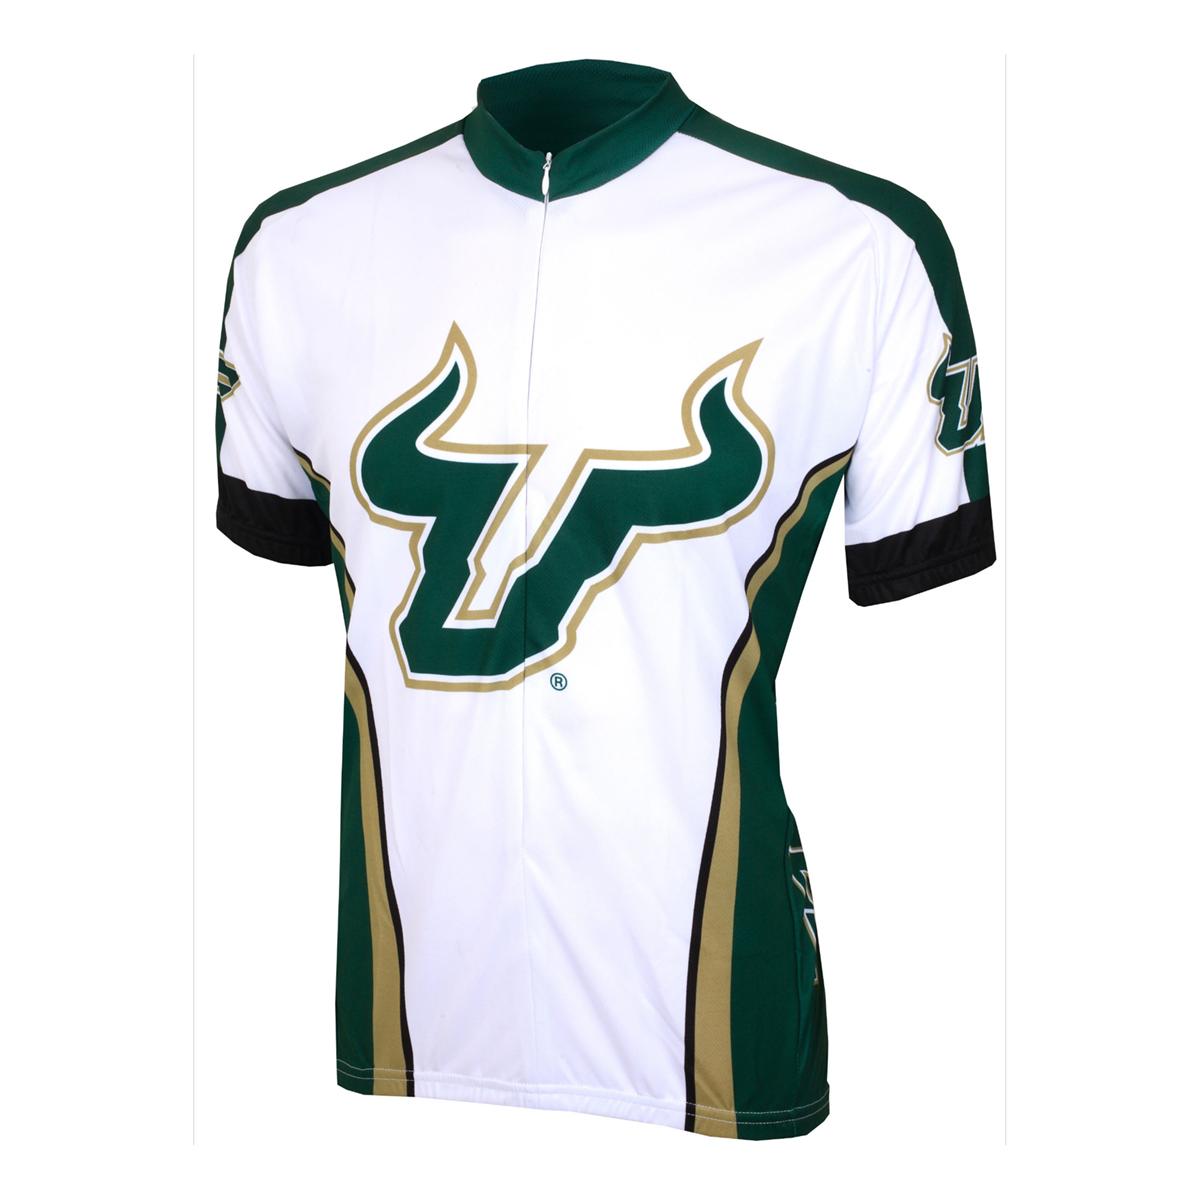 Adrenaline Promotions University of South Florida Bull Cycling Jersey